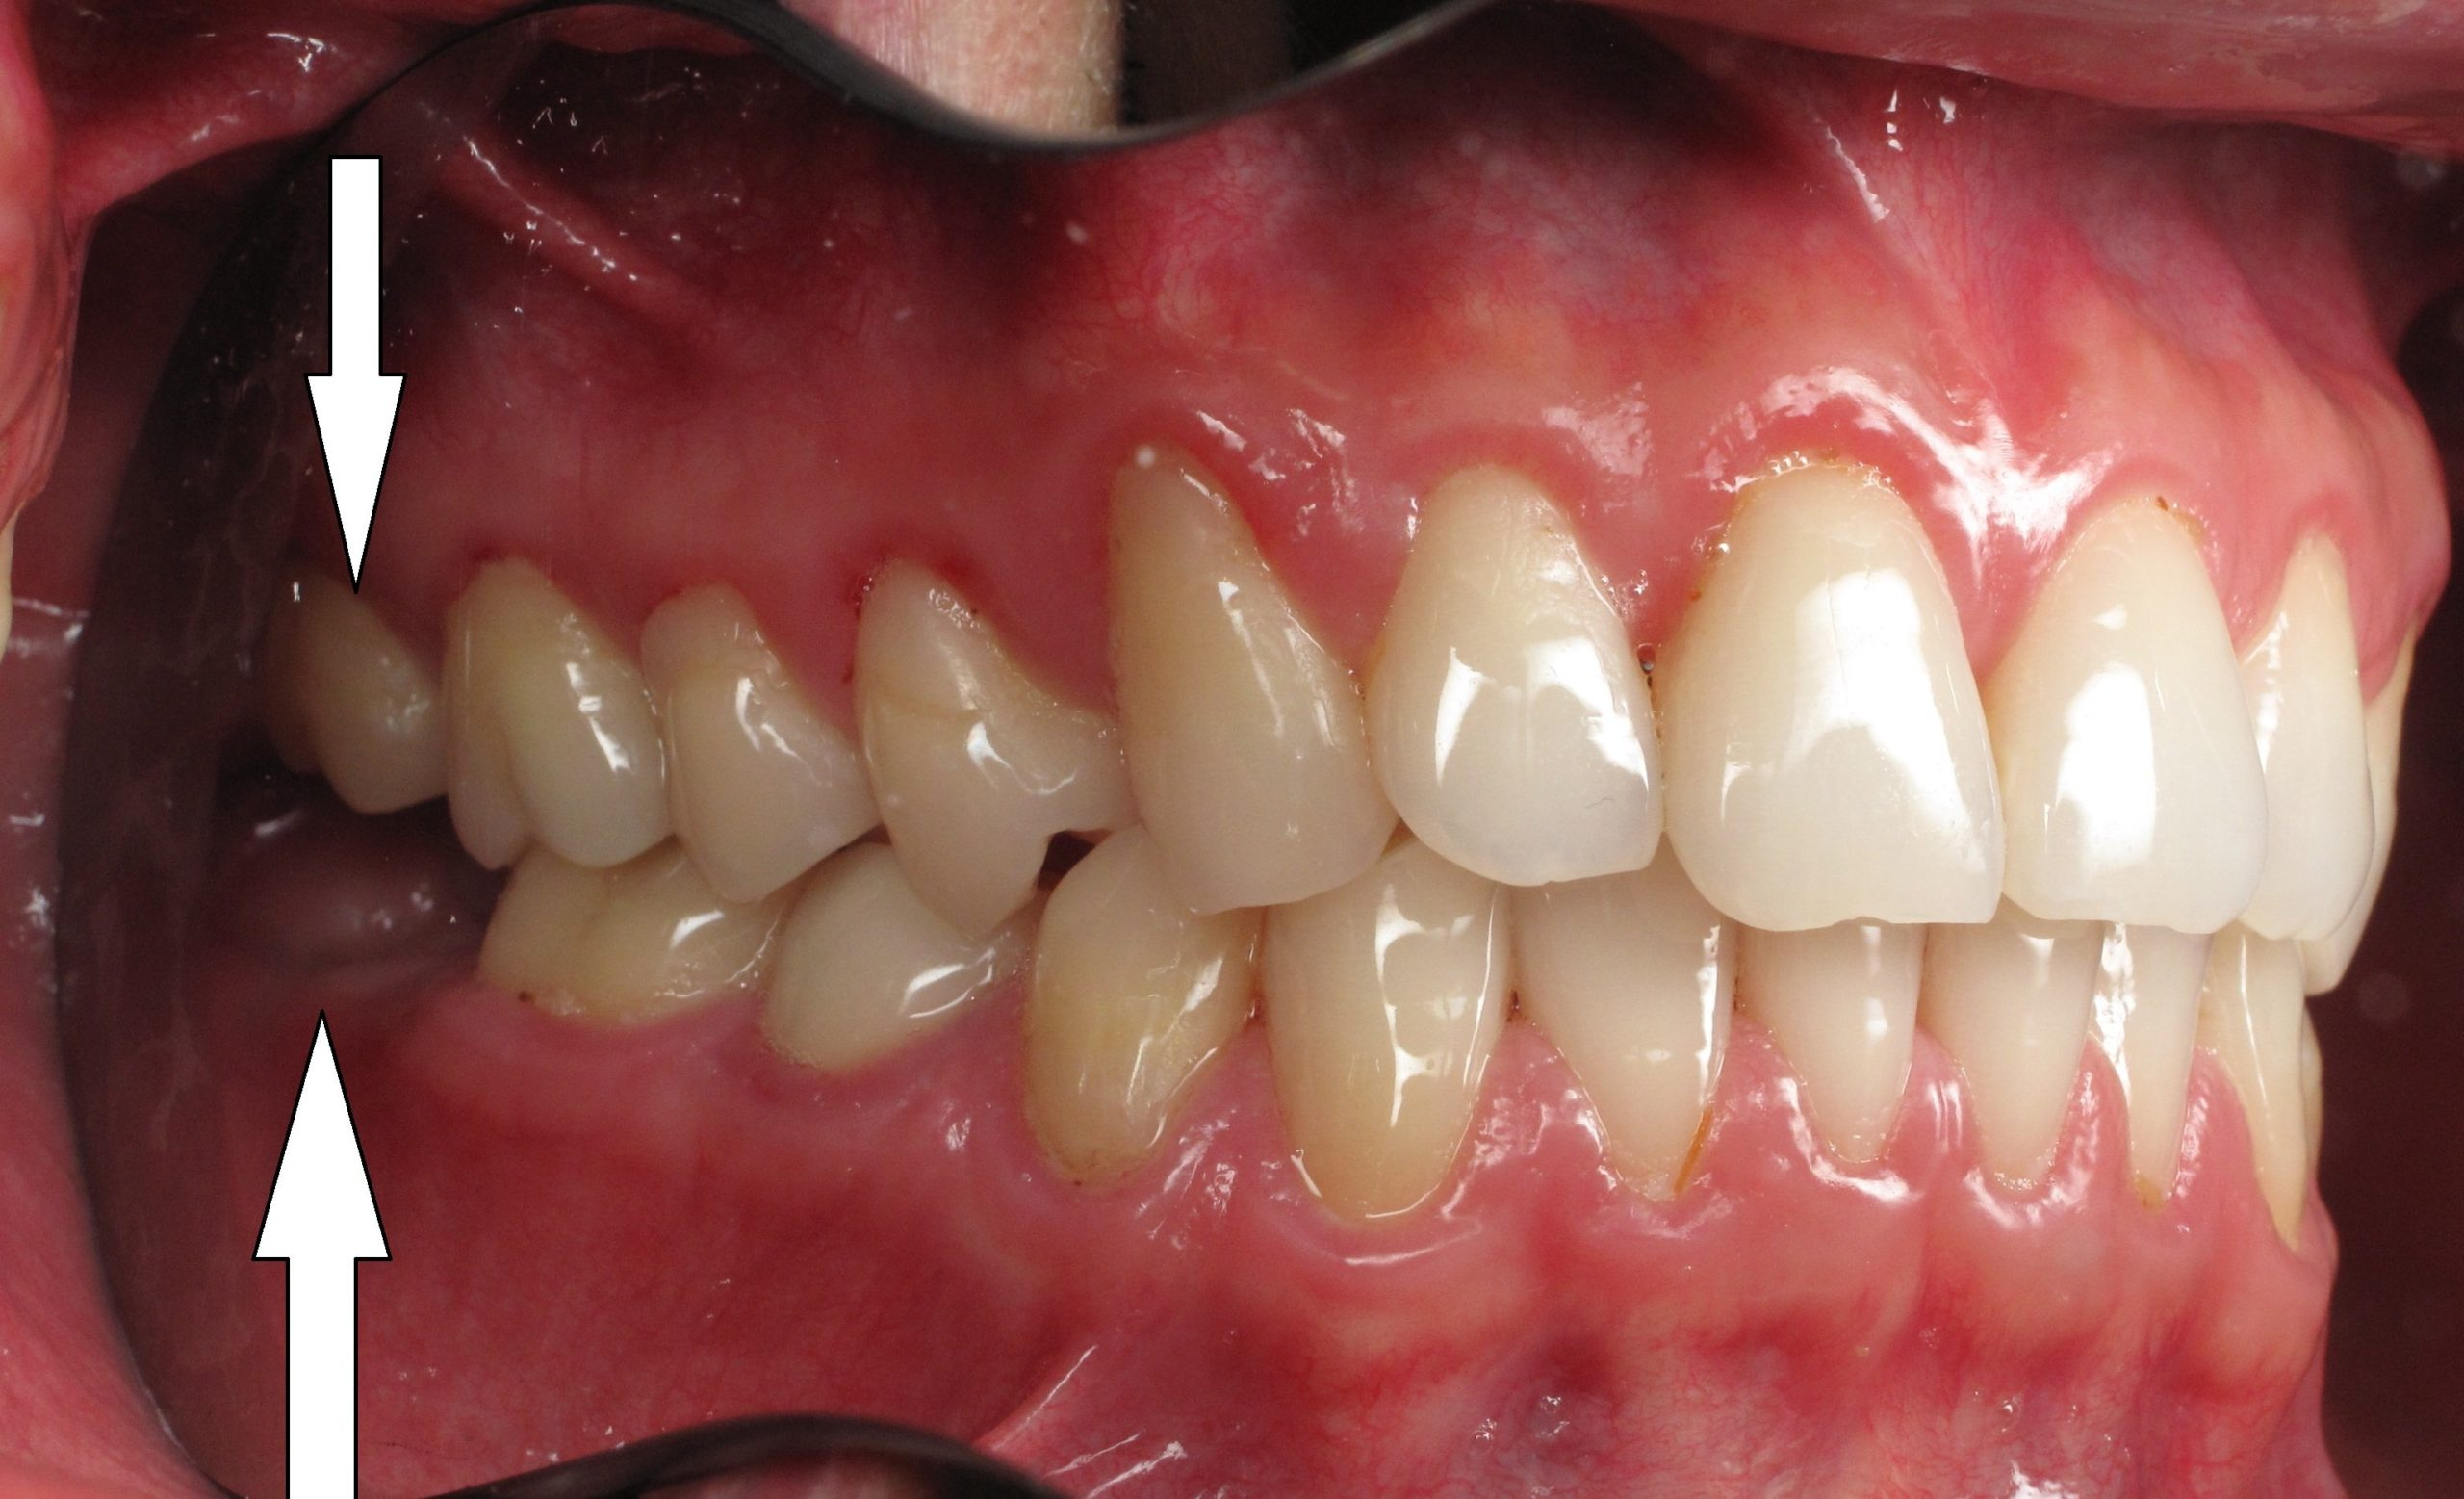 Can I Pull Out New Molars?